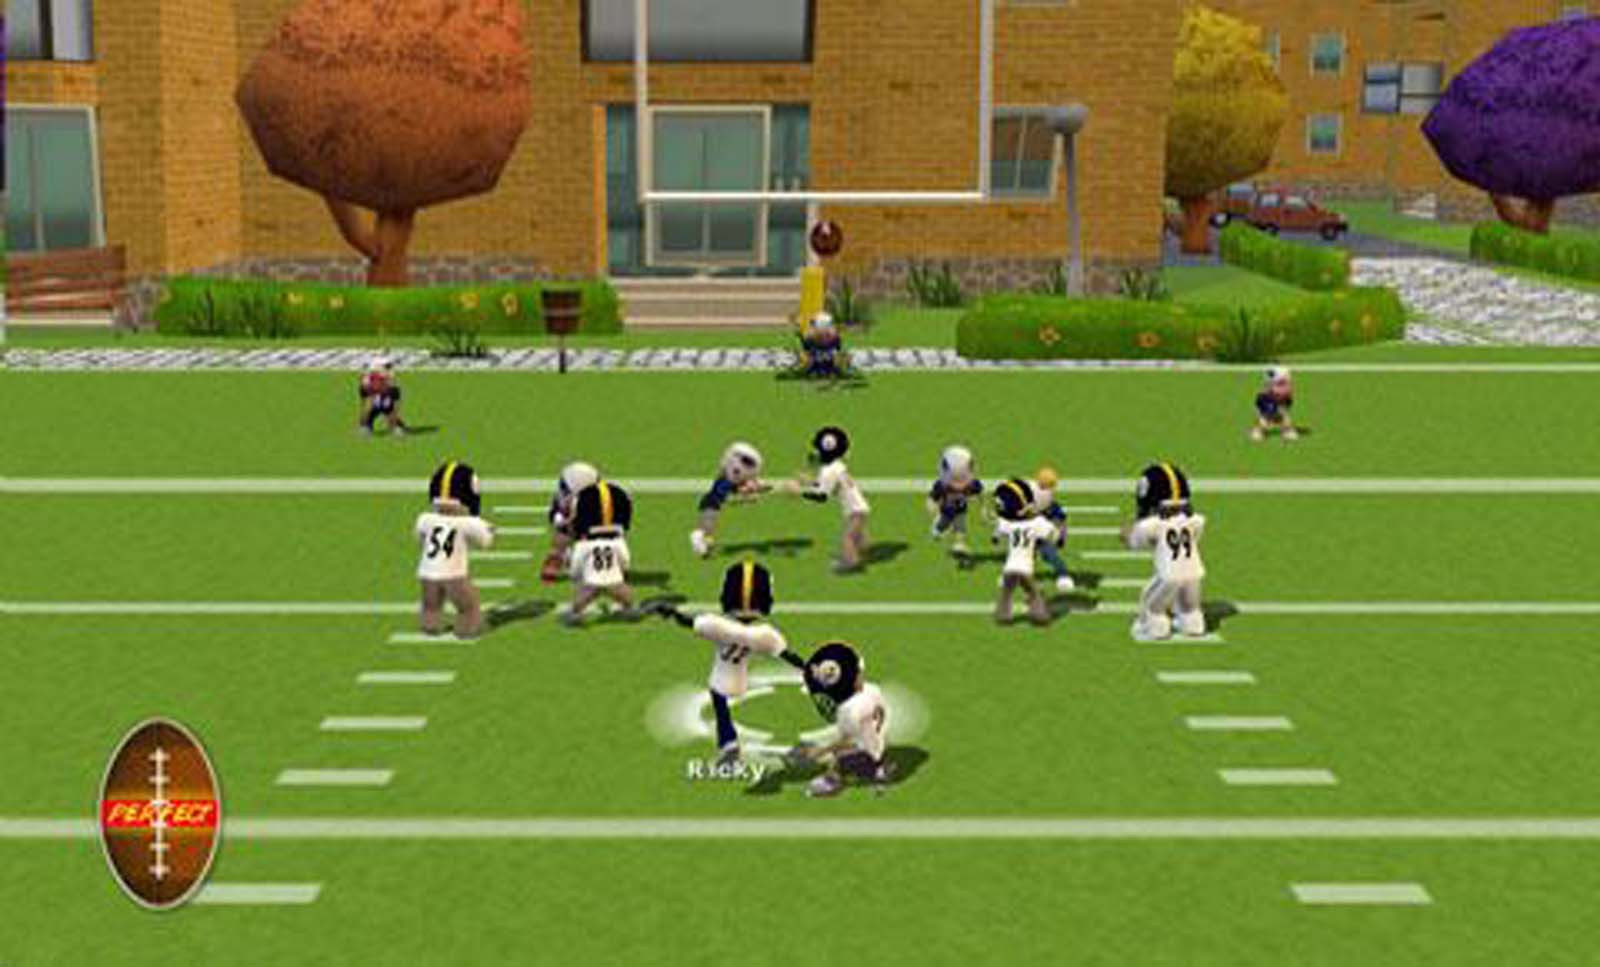 Backyard Video Games  Backyard Football 08 USA ISO